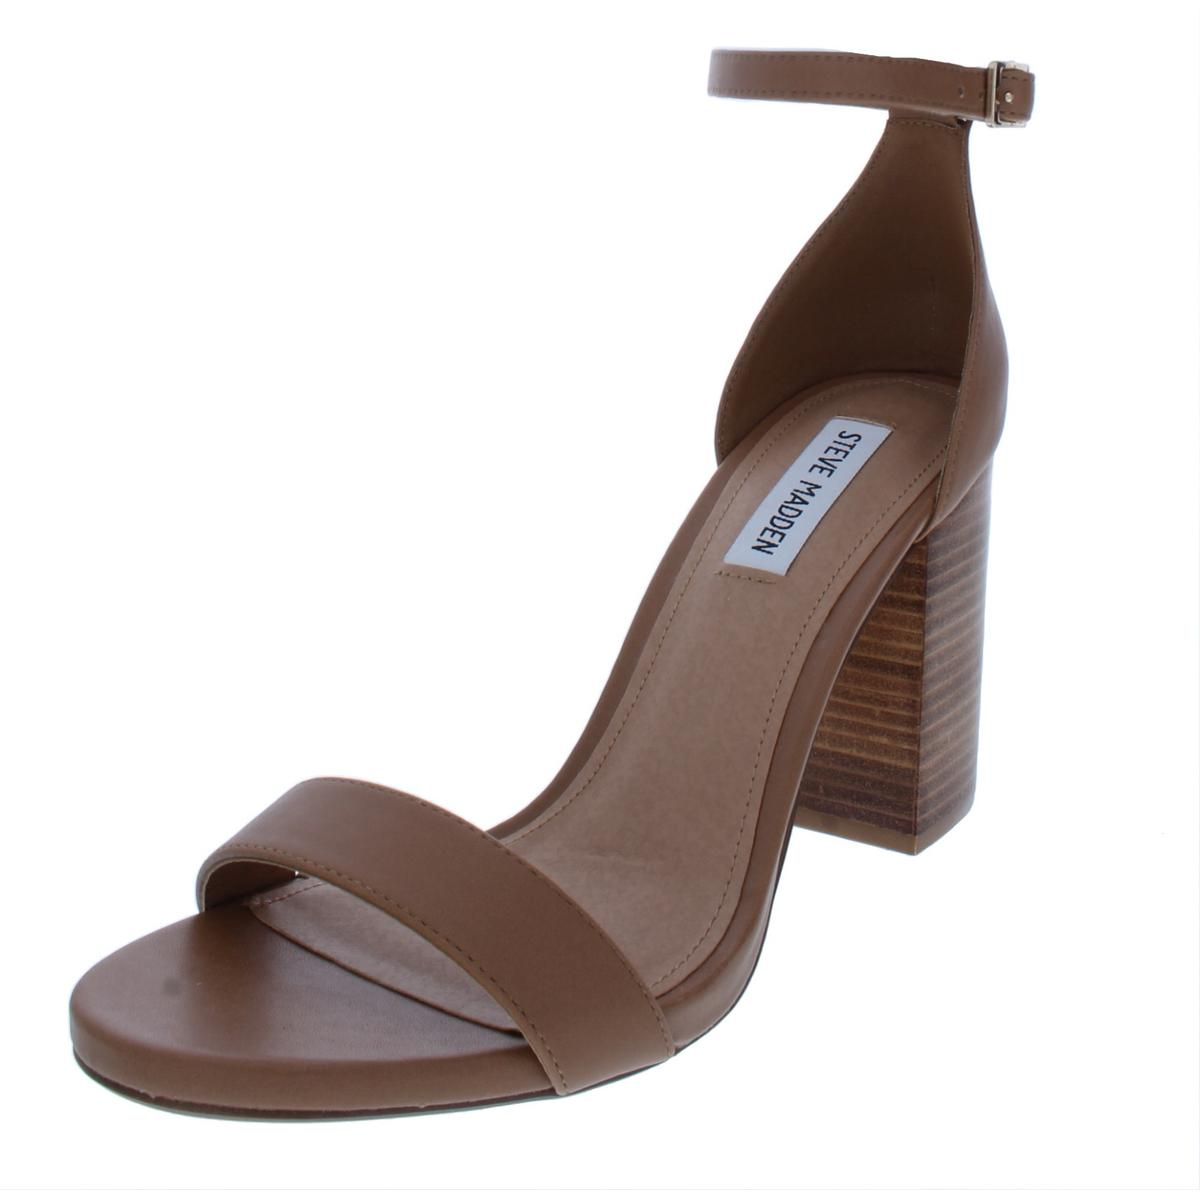 0deceed45102e Details about Steve Madden Womens Garcia Solid Stacked Heel Dress Sandals  Shoes BHFO 3059